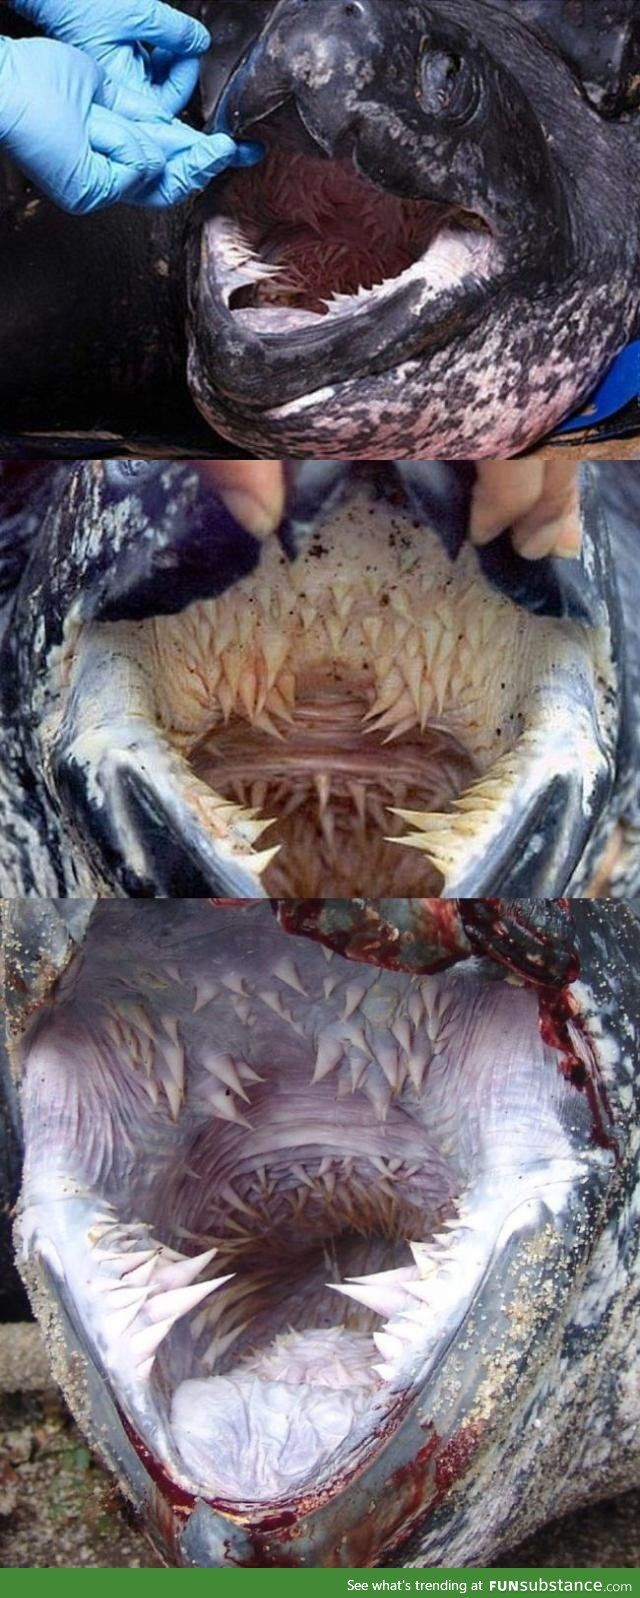 Esophagus of Leatherback turtles showing backward pointing spikes. Adult leatherback sea turtles subsist almost entirely on jellyfish. Jellyfish are pretty slippery, you see, and the razor-sharp rows of papillae prevent them from slipping out of the turtle's mouth.